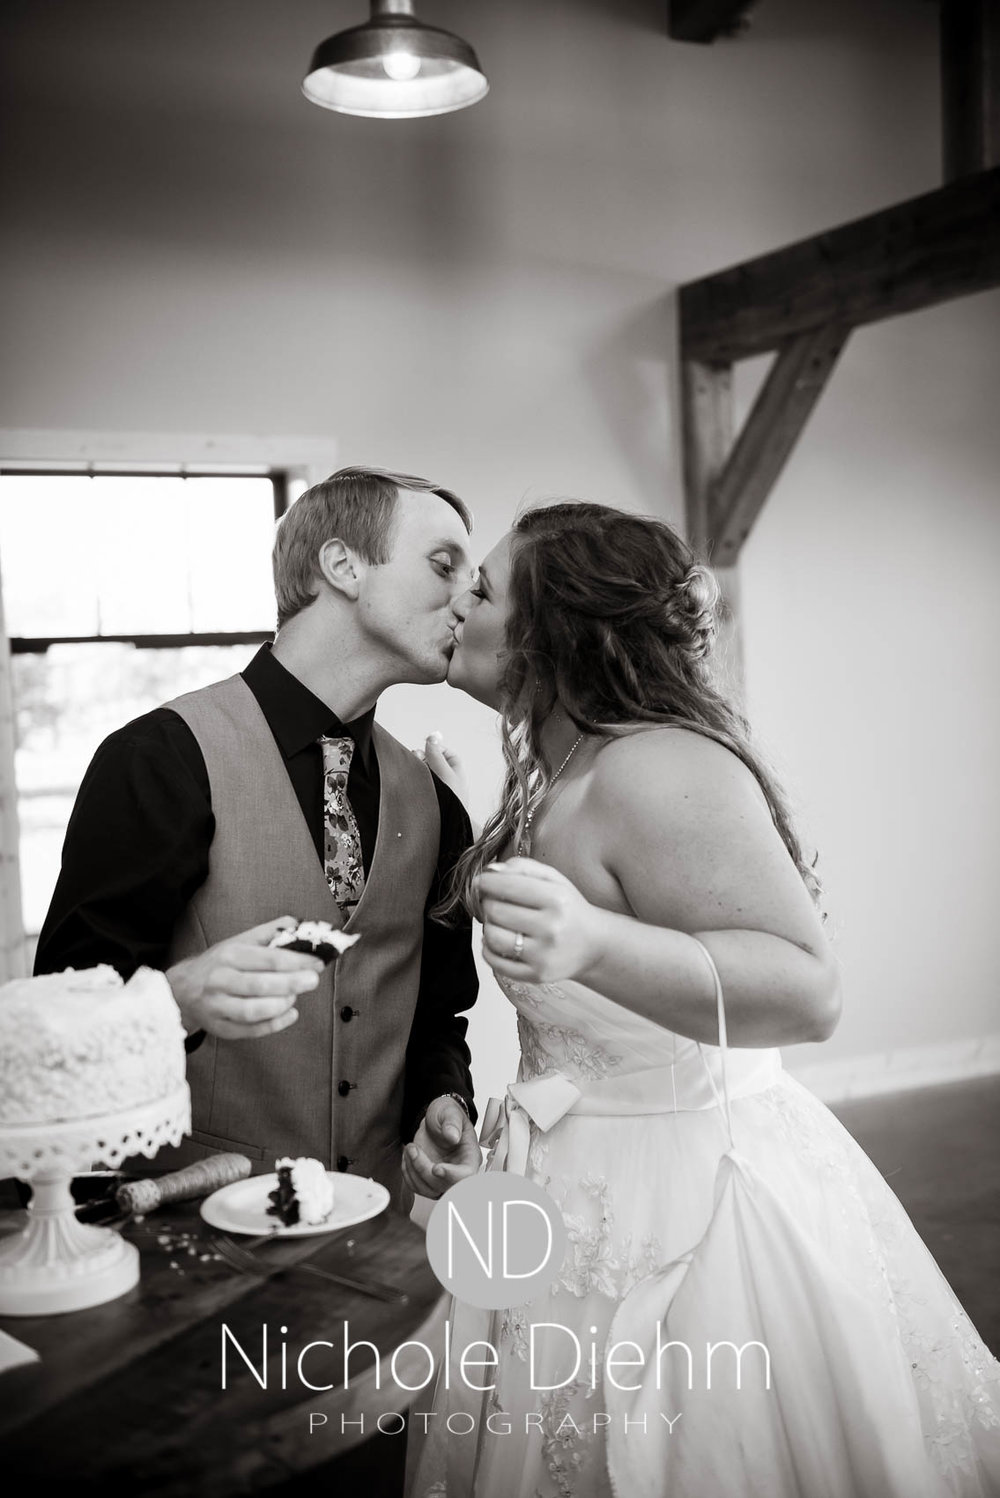 Cedar-Falls-Iowa-Wedding-Photographer-Sioux-Falls-South-Dakota-Emily-Stricklin-Jordy-Reinders-Meadow-Barn-Fall-Nichole-Diehm-Photography-Venue302.jpg